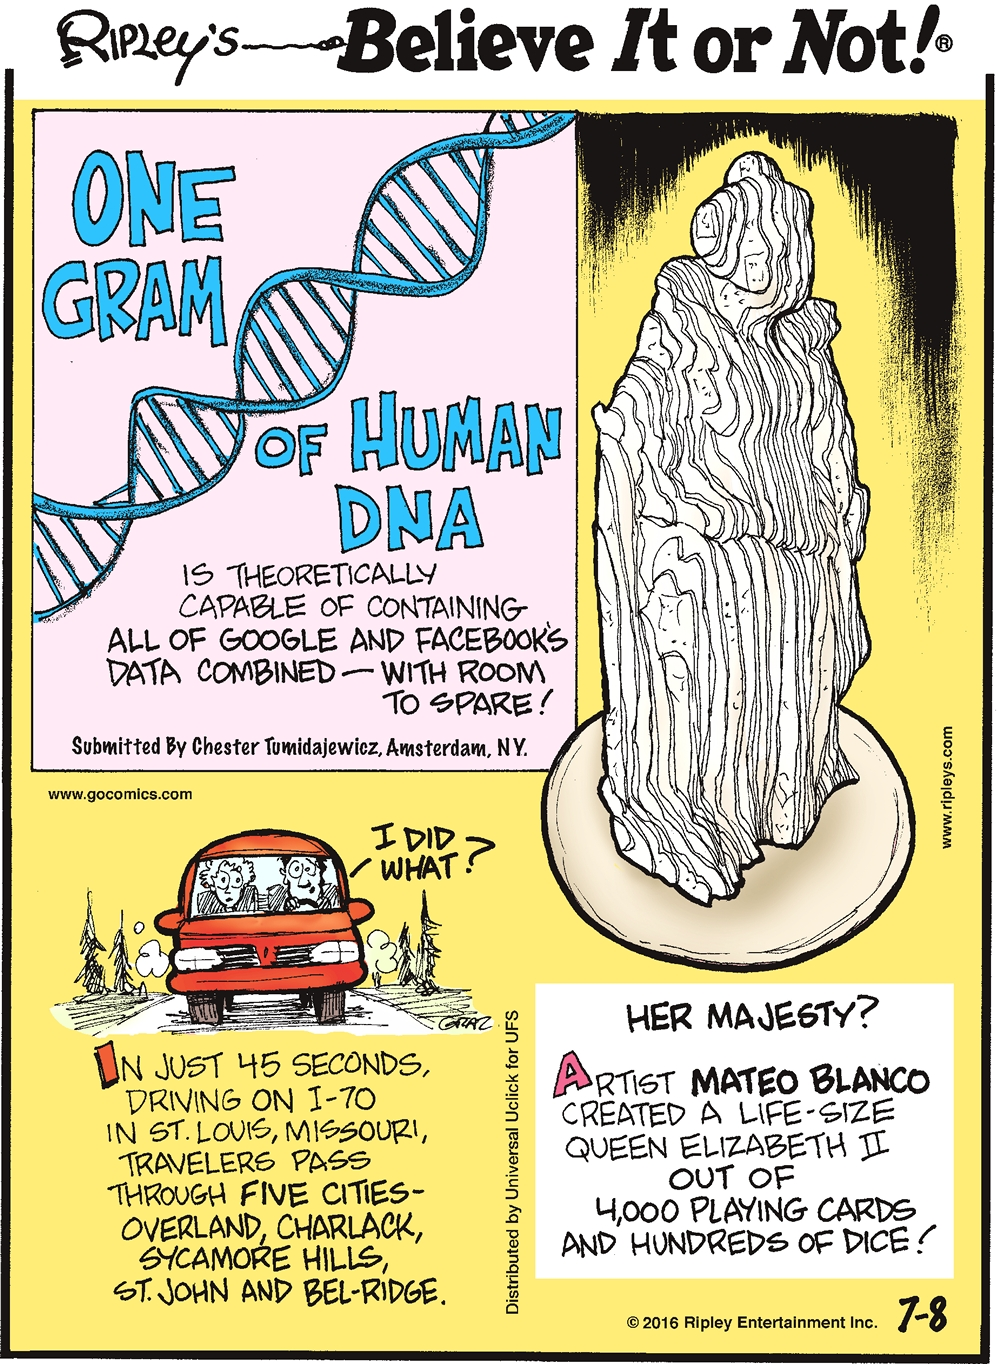 One gram of human DNA is theoretically capable of containing all of Google and Facebook data combined—with room to spare! Submitted by Chester Tumidajewicz, Amsterdam, NY. -------------------- In just 45 seconds, driving on I-70 on St. Louis, Missouri, travelers pass through five cities—Overland, Charlack, Sycamore Hills, St. john, and Bel-ridge. -------------------- Artist Mateo Blanco created a life-size Queen Elizabeth II out of 4,000 playing cards and hundreds of dice!